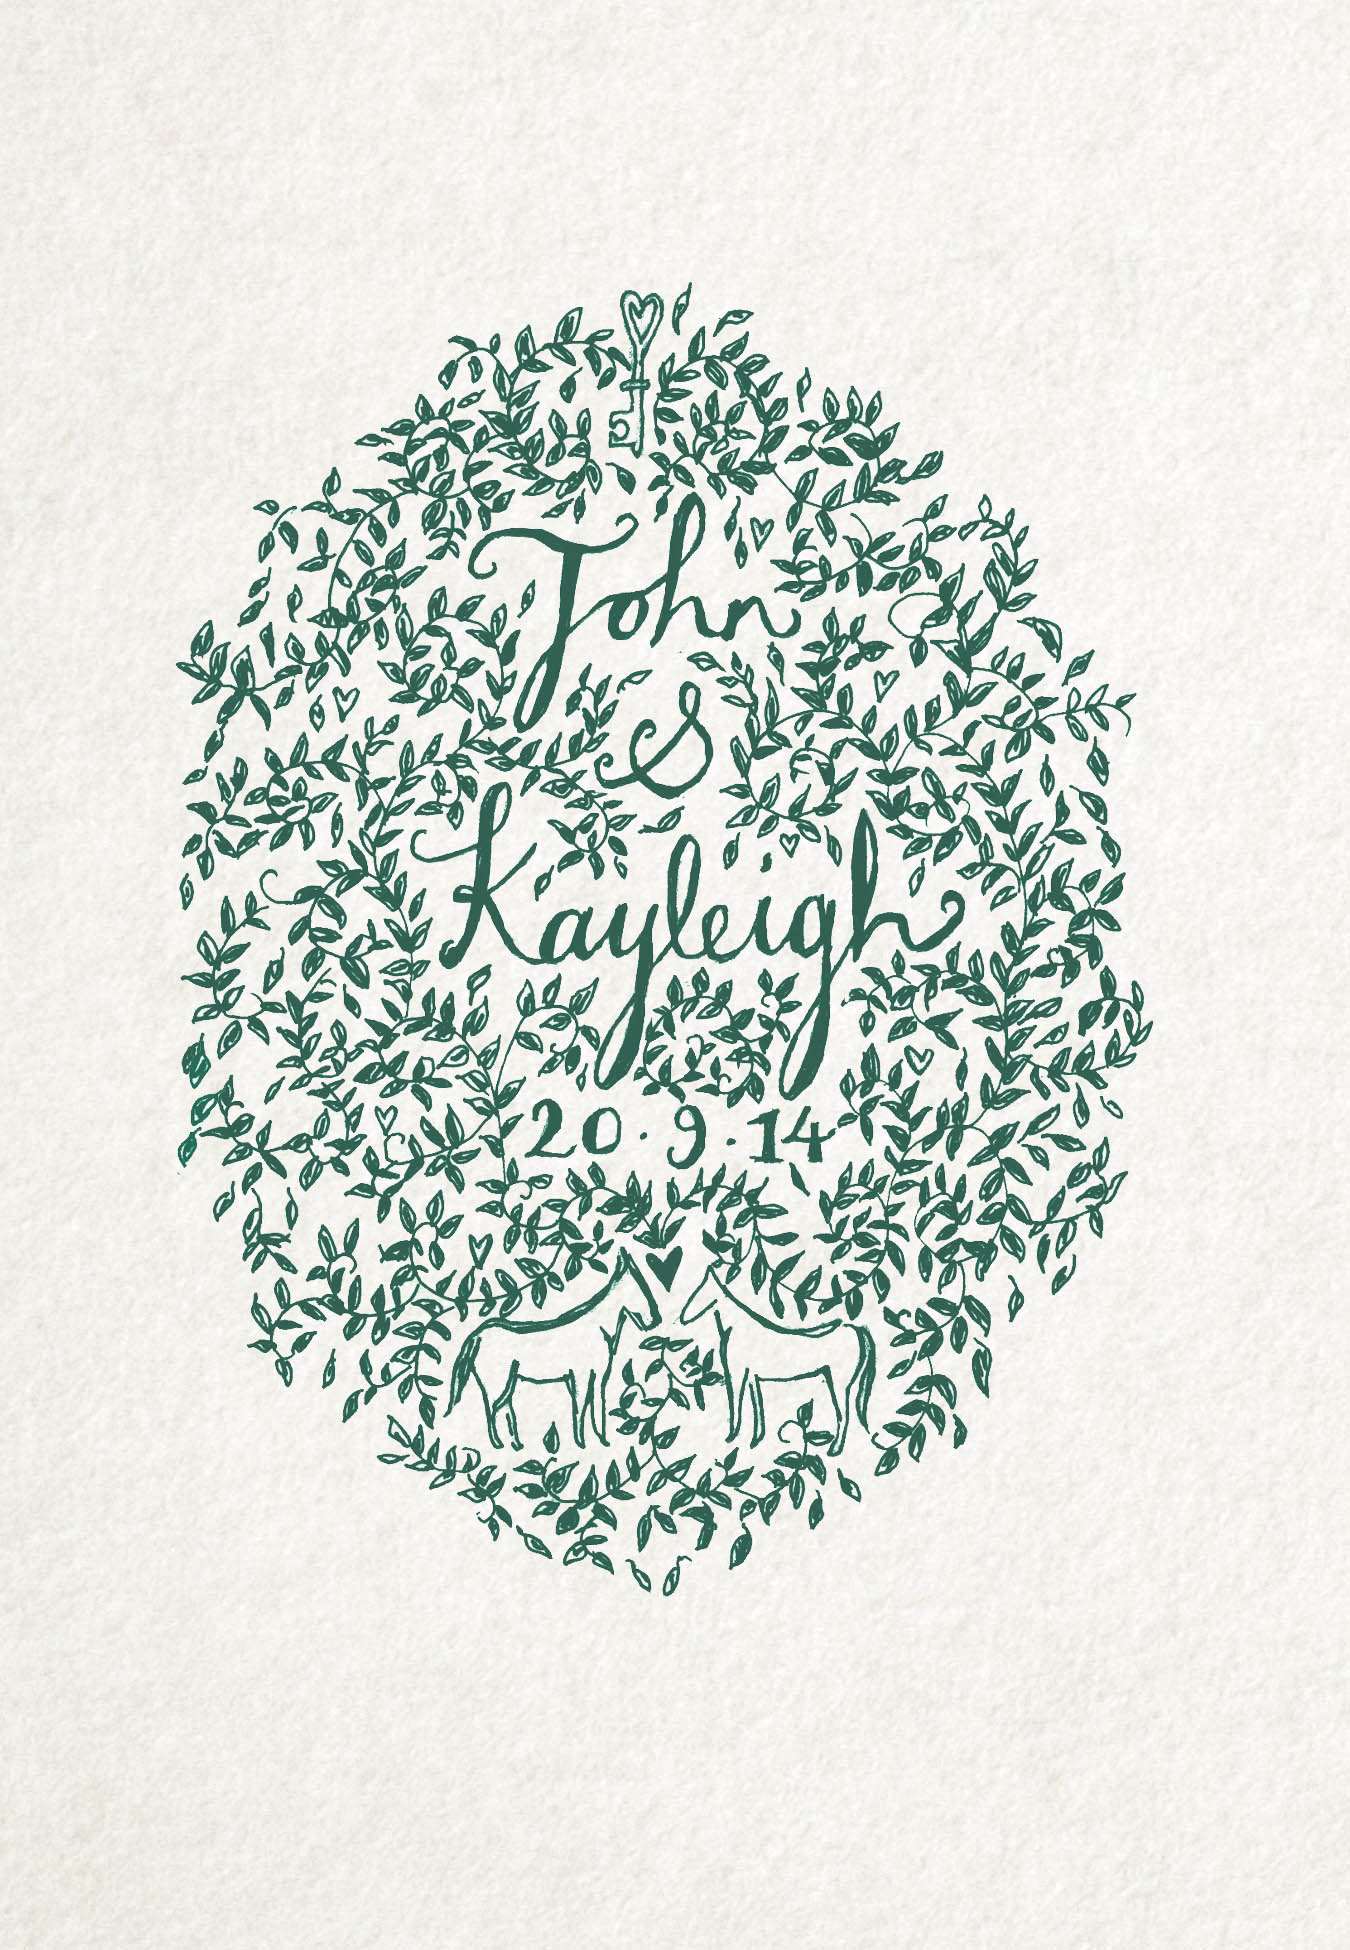 wedding COMMISSIONS - A floral bespoke commission created for a truly unique wedding present.Hand drawn with pen and digitally manipulated to turn the design to natural green tones.